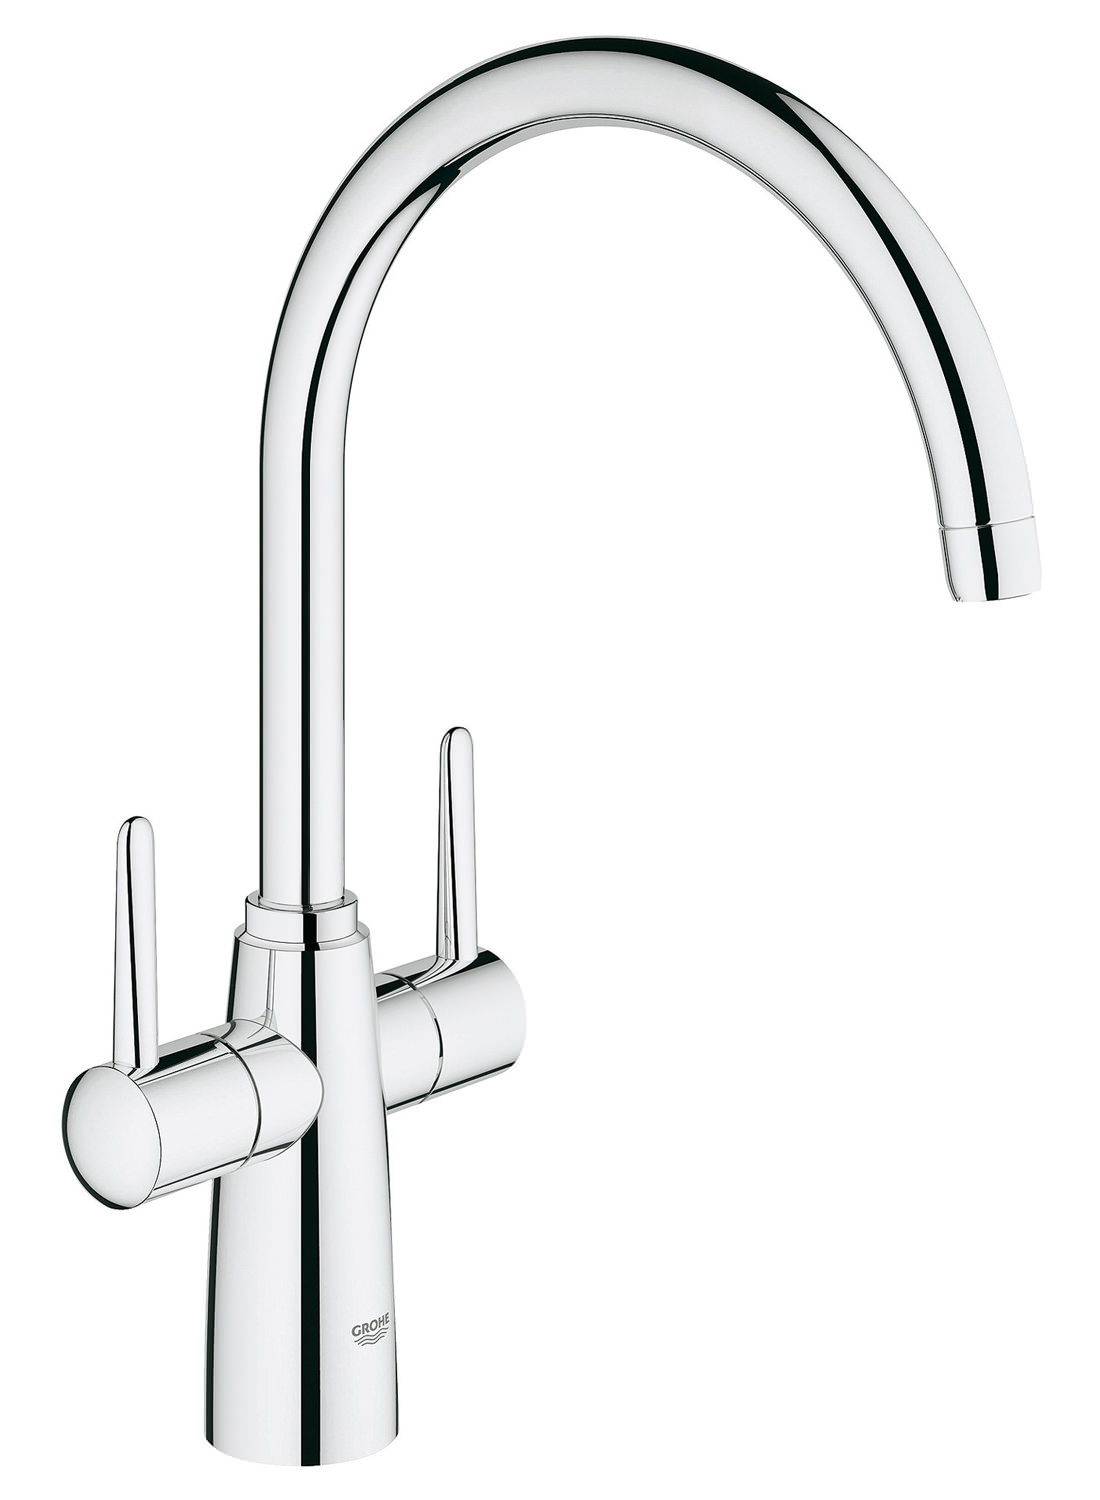 grohe ambi contemporary 2 handle kitchen sink mixer tap with swivel spout